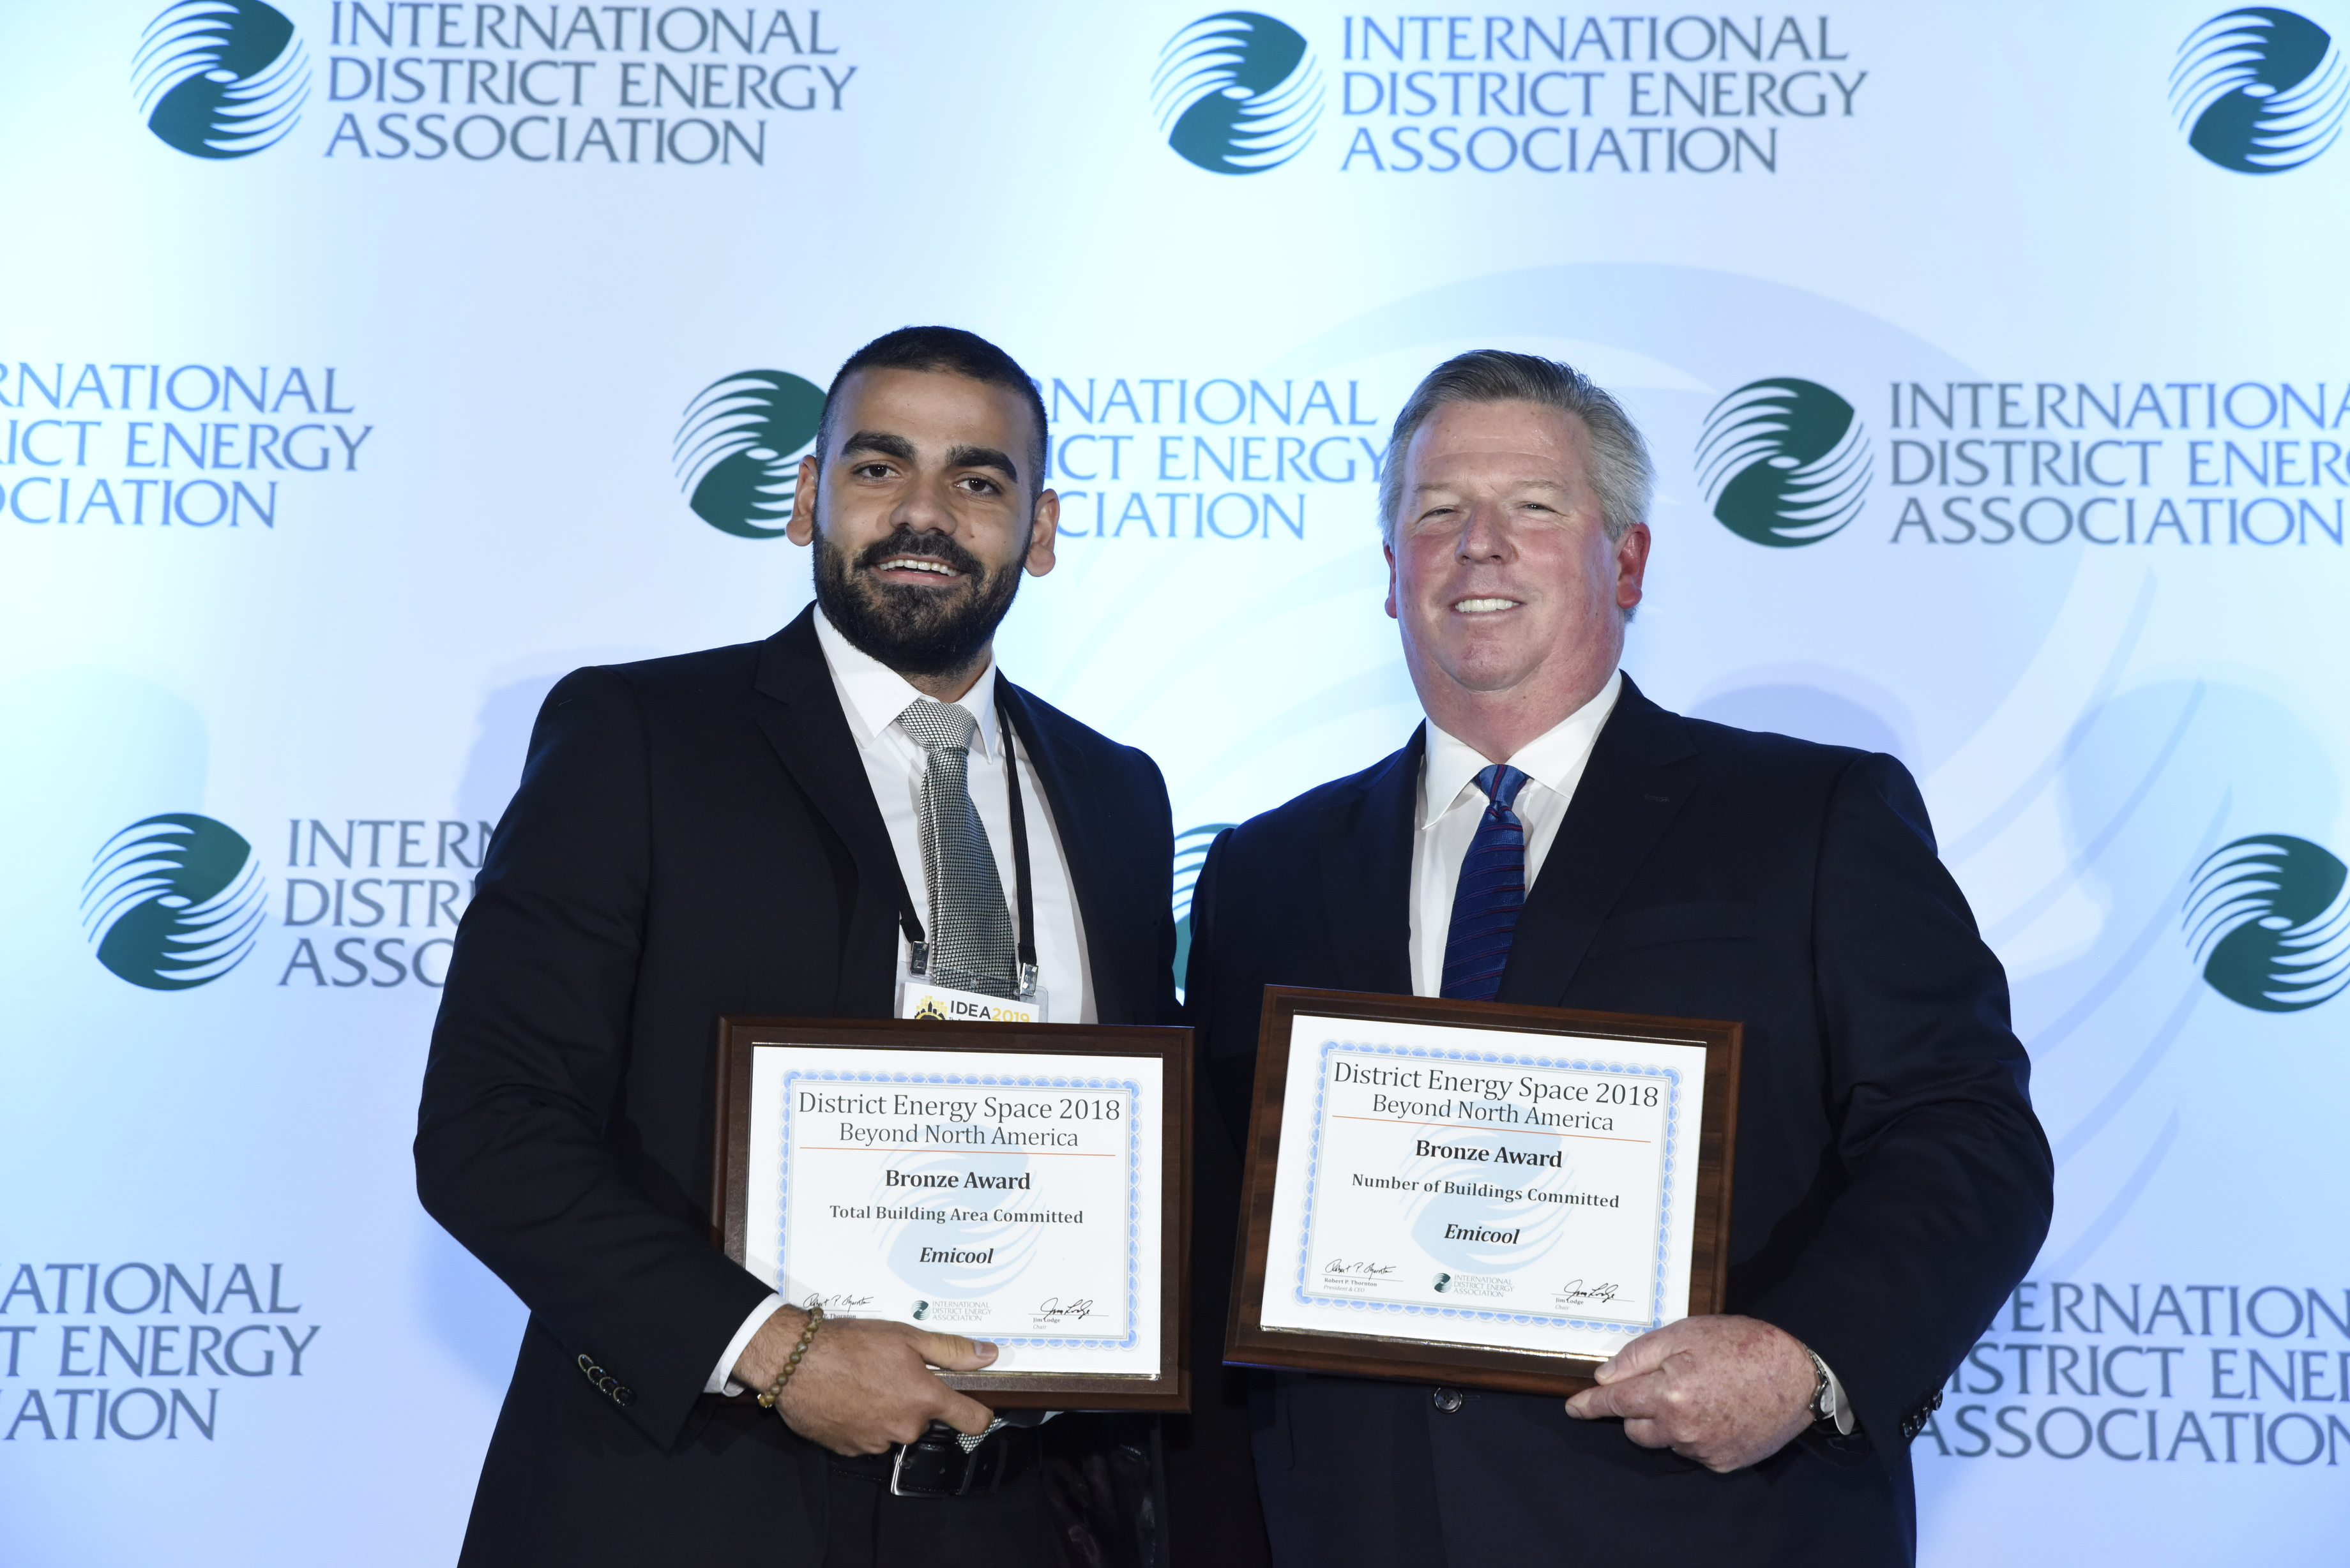 Representative From Emicool Receiving The Award At Pittsburgh, USA